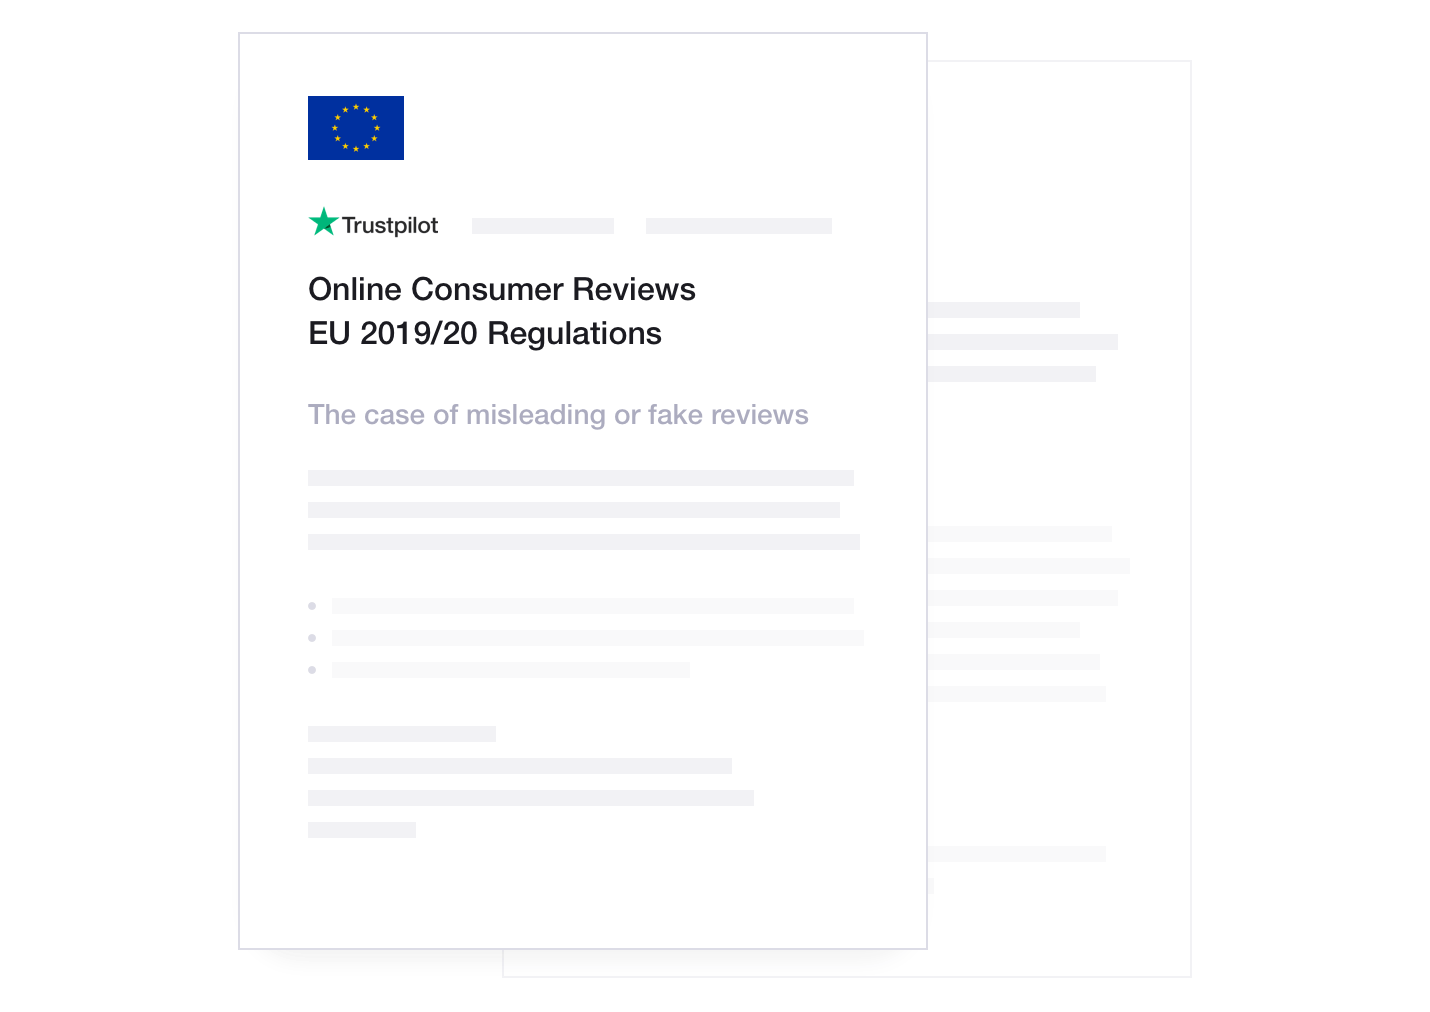 Trustpilot compliance to EU Regulations